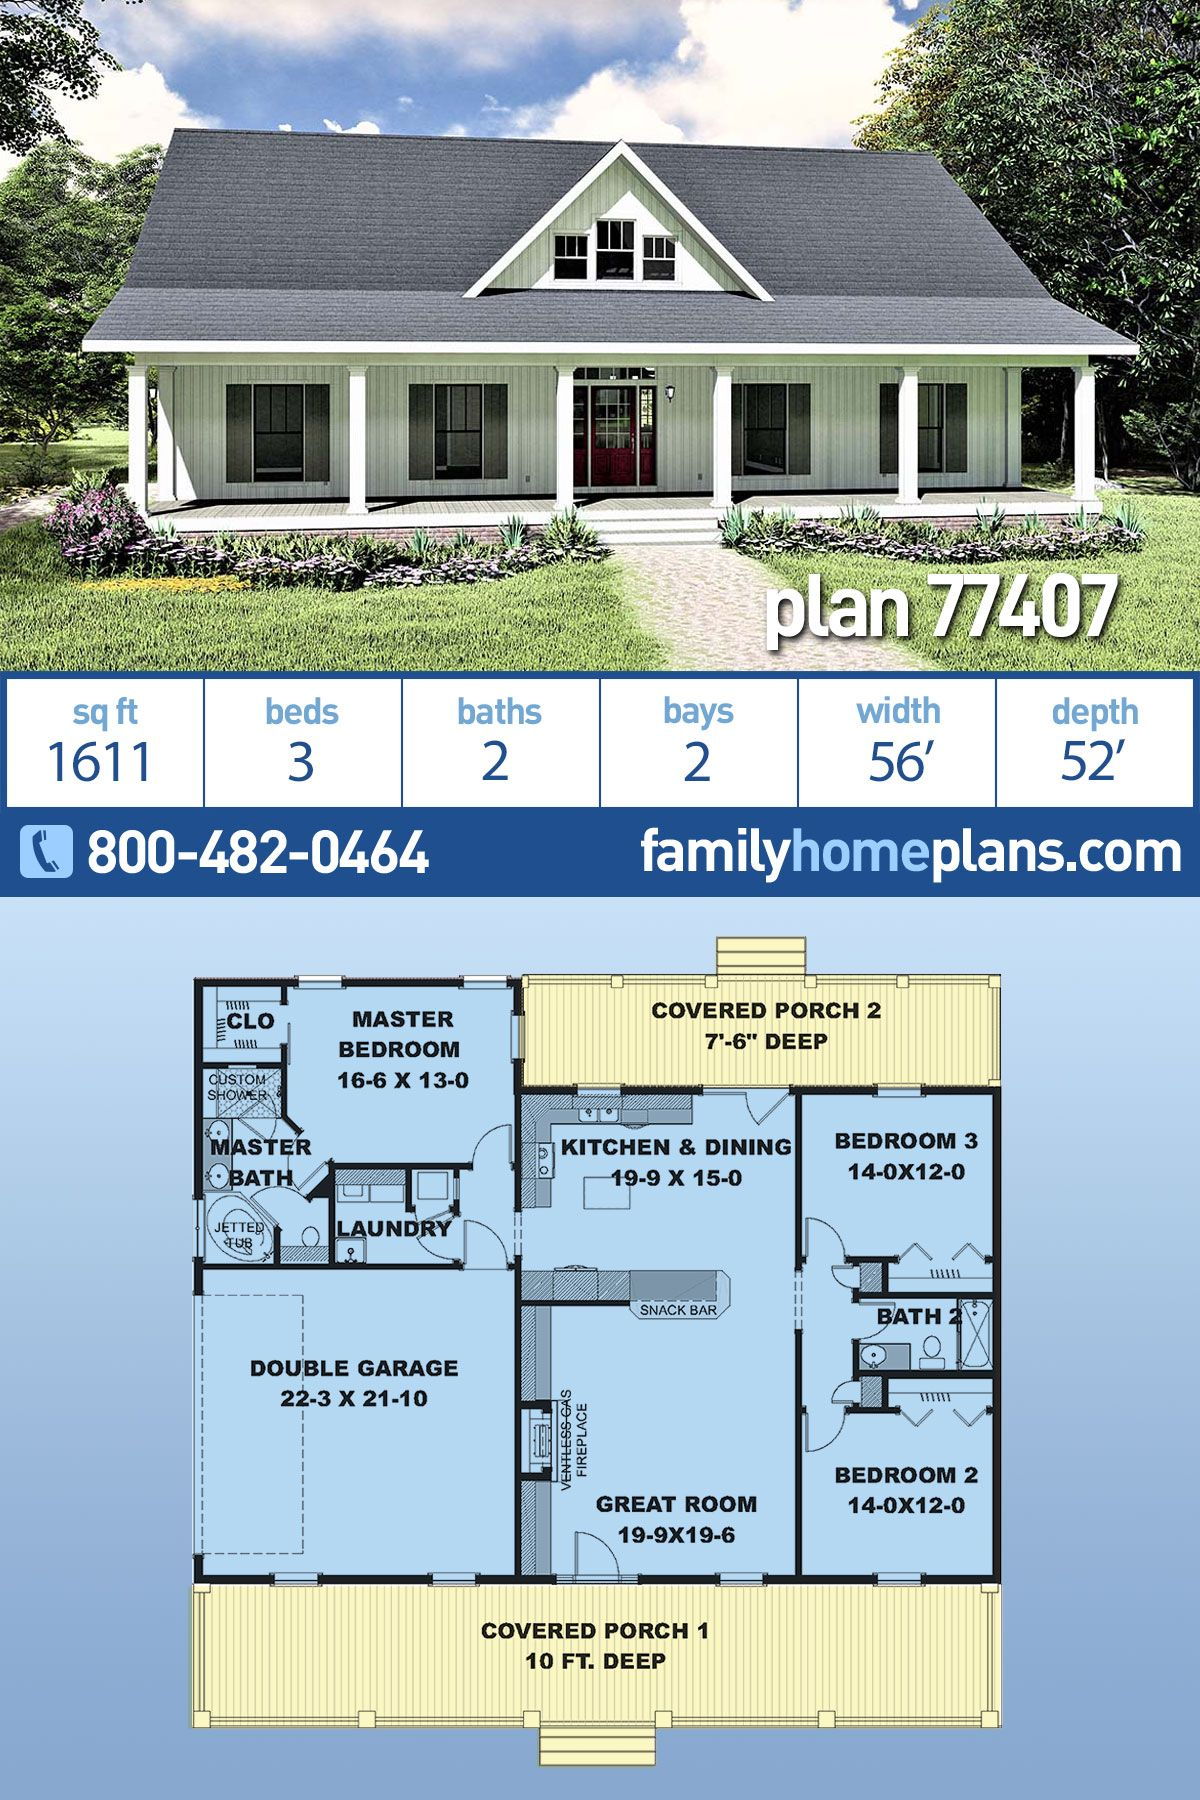 Southern Style House Plan 77407 With 3 Bed 2 Bath 2 Car Garage Southern House Plan Dream House Plans Barn House Plans